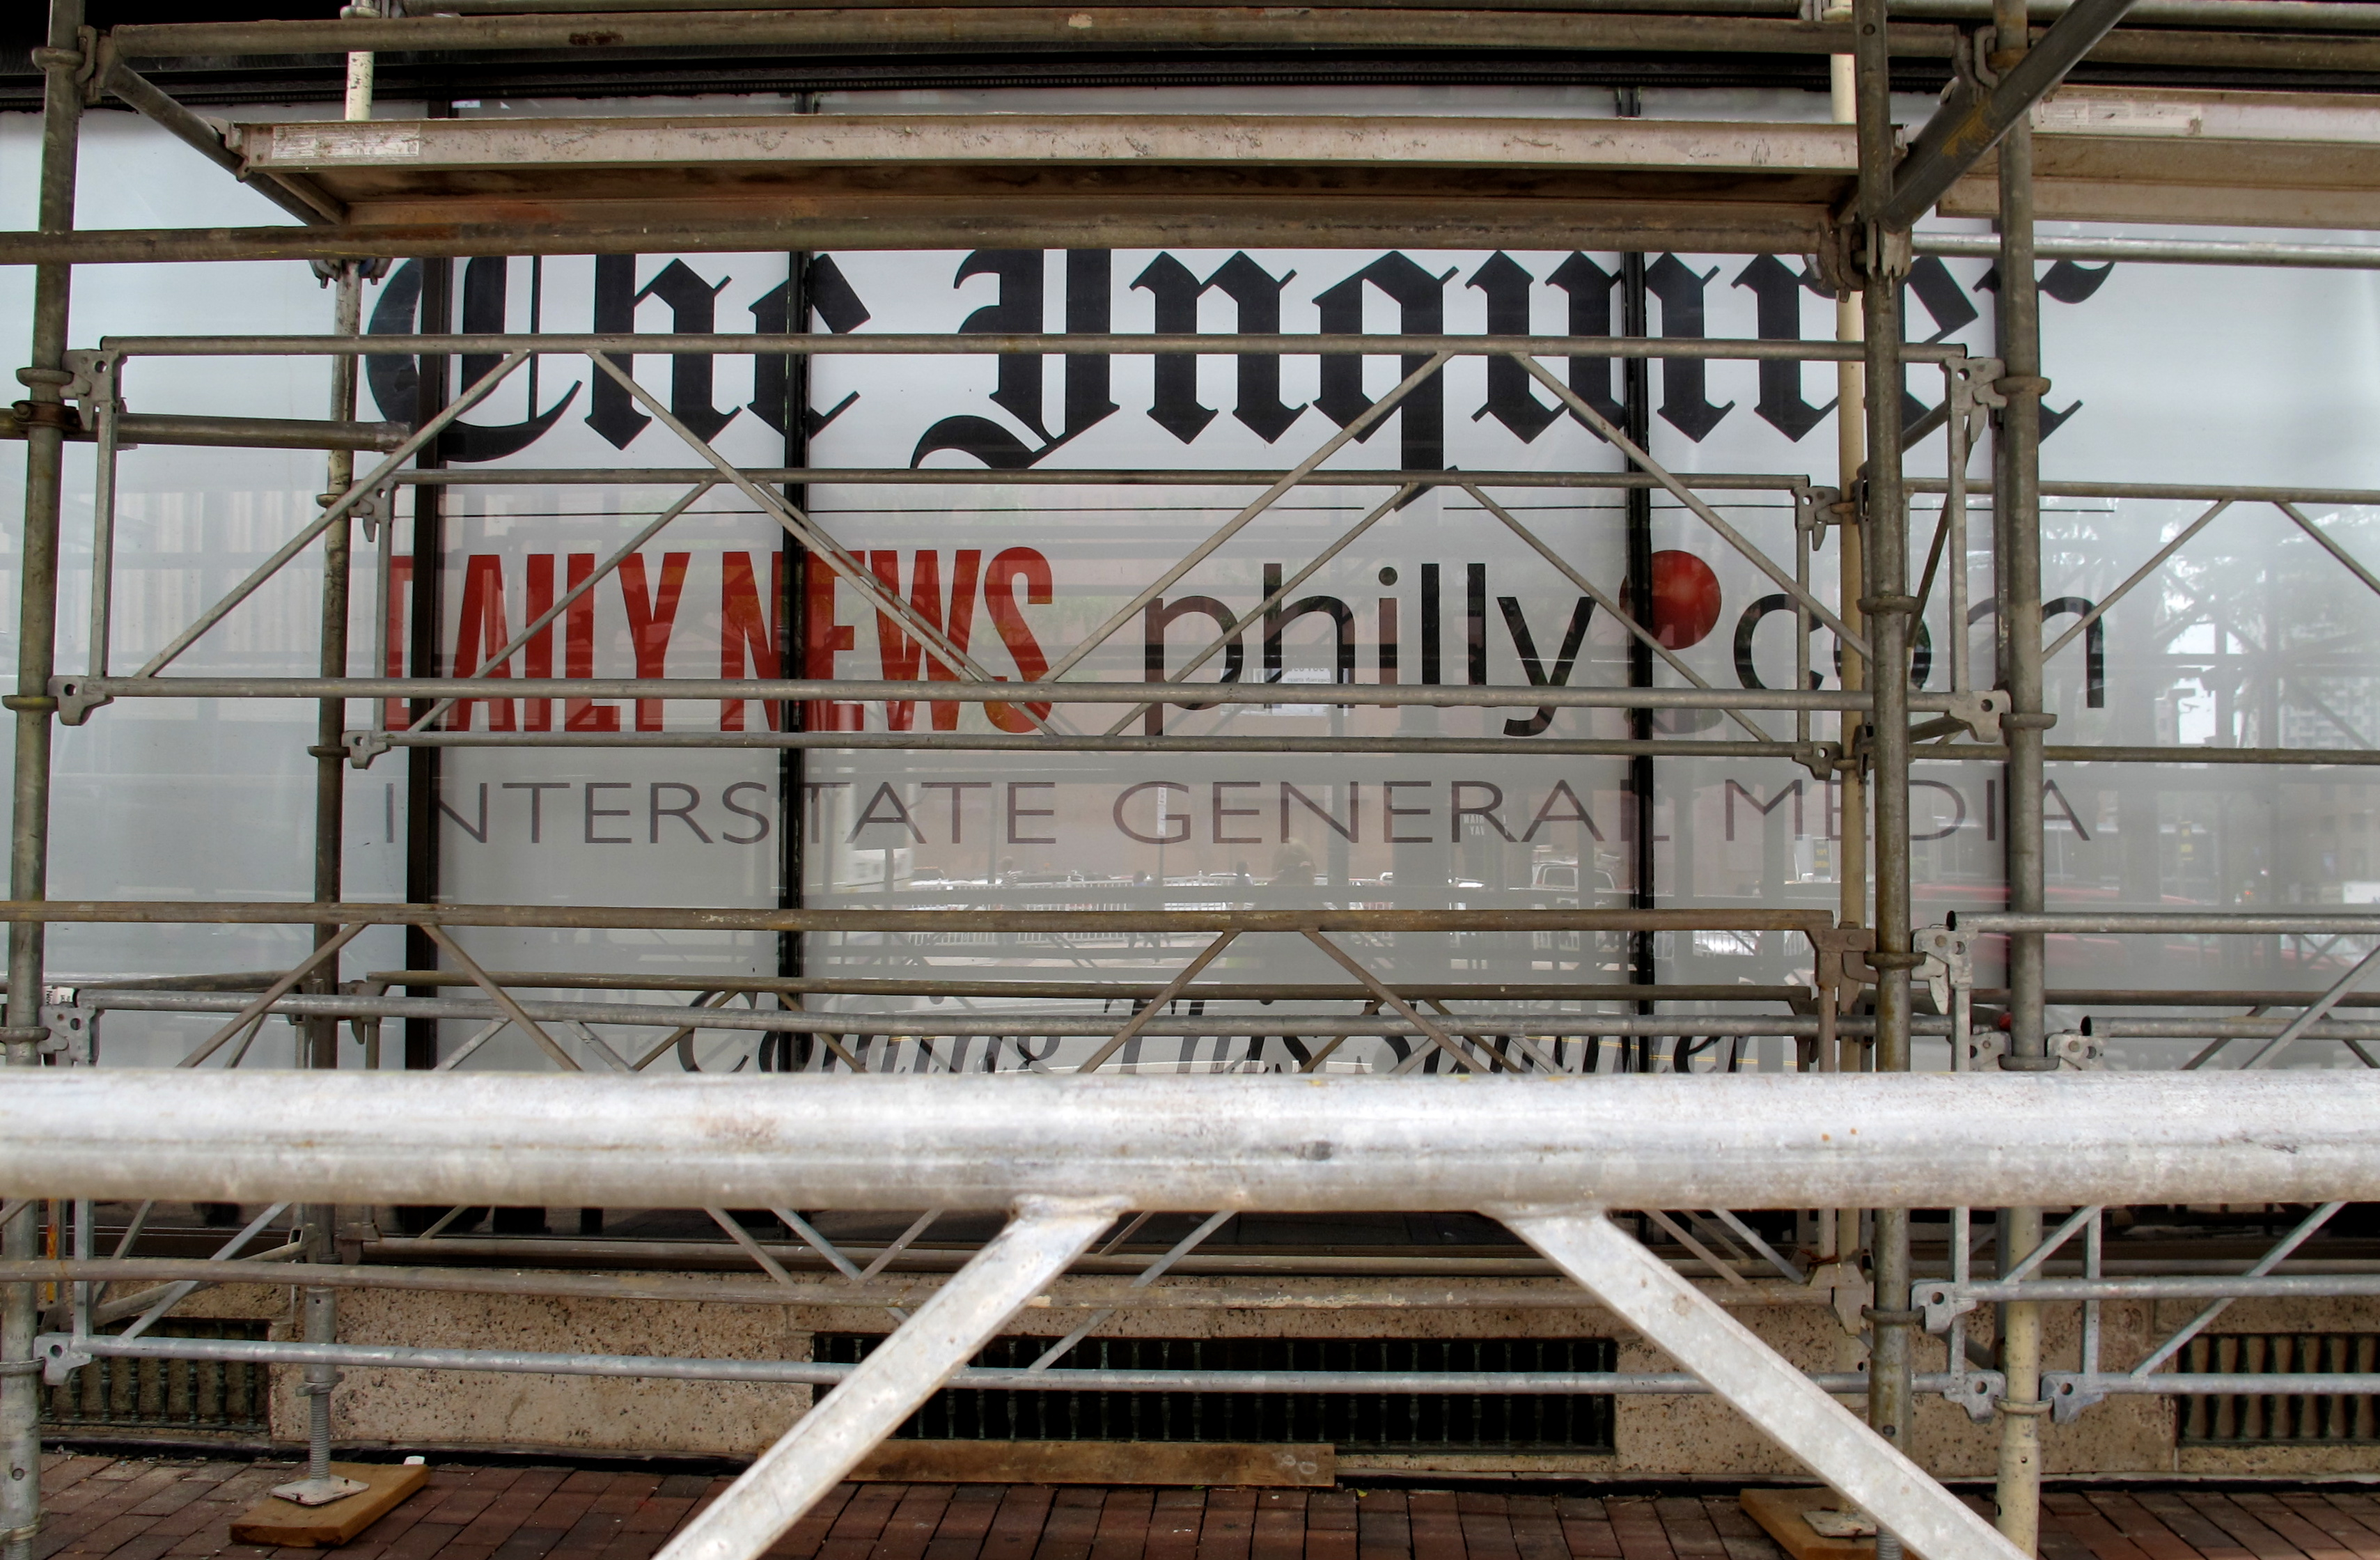 The Inquirer, Daily News, and philly.com now live on Market East.